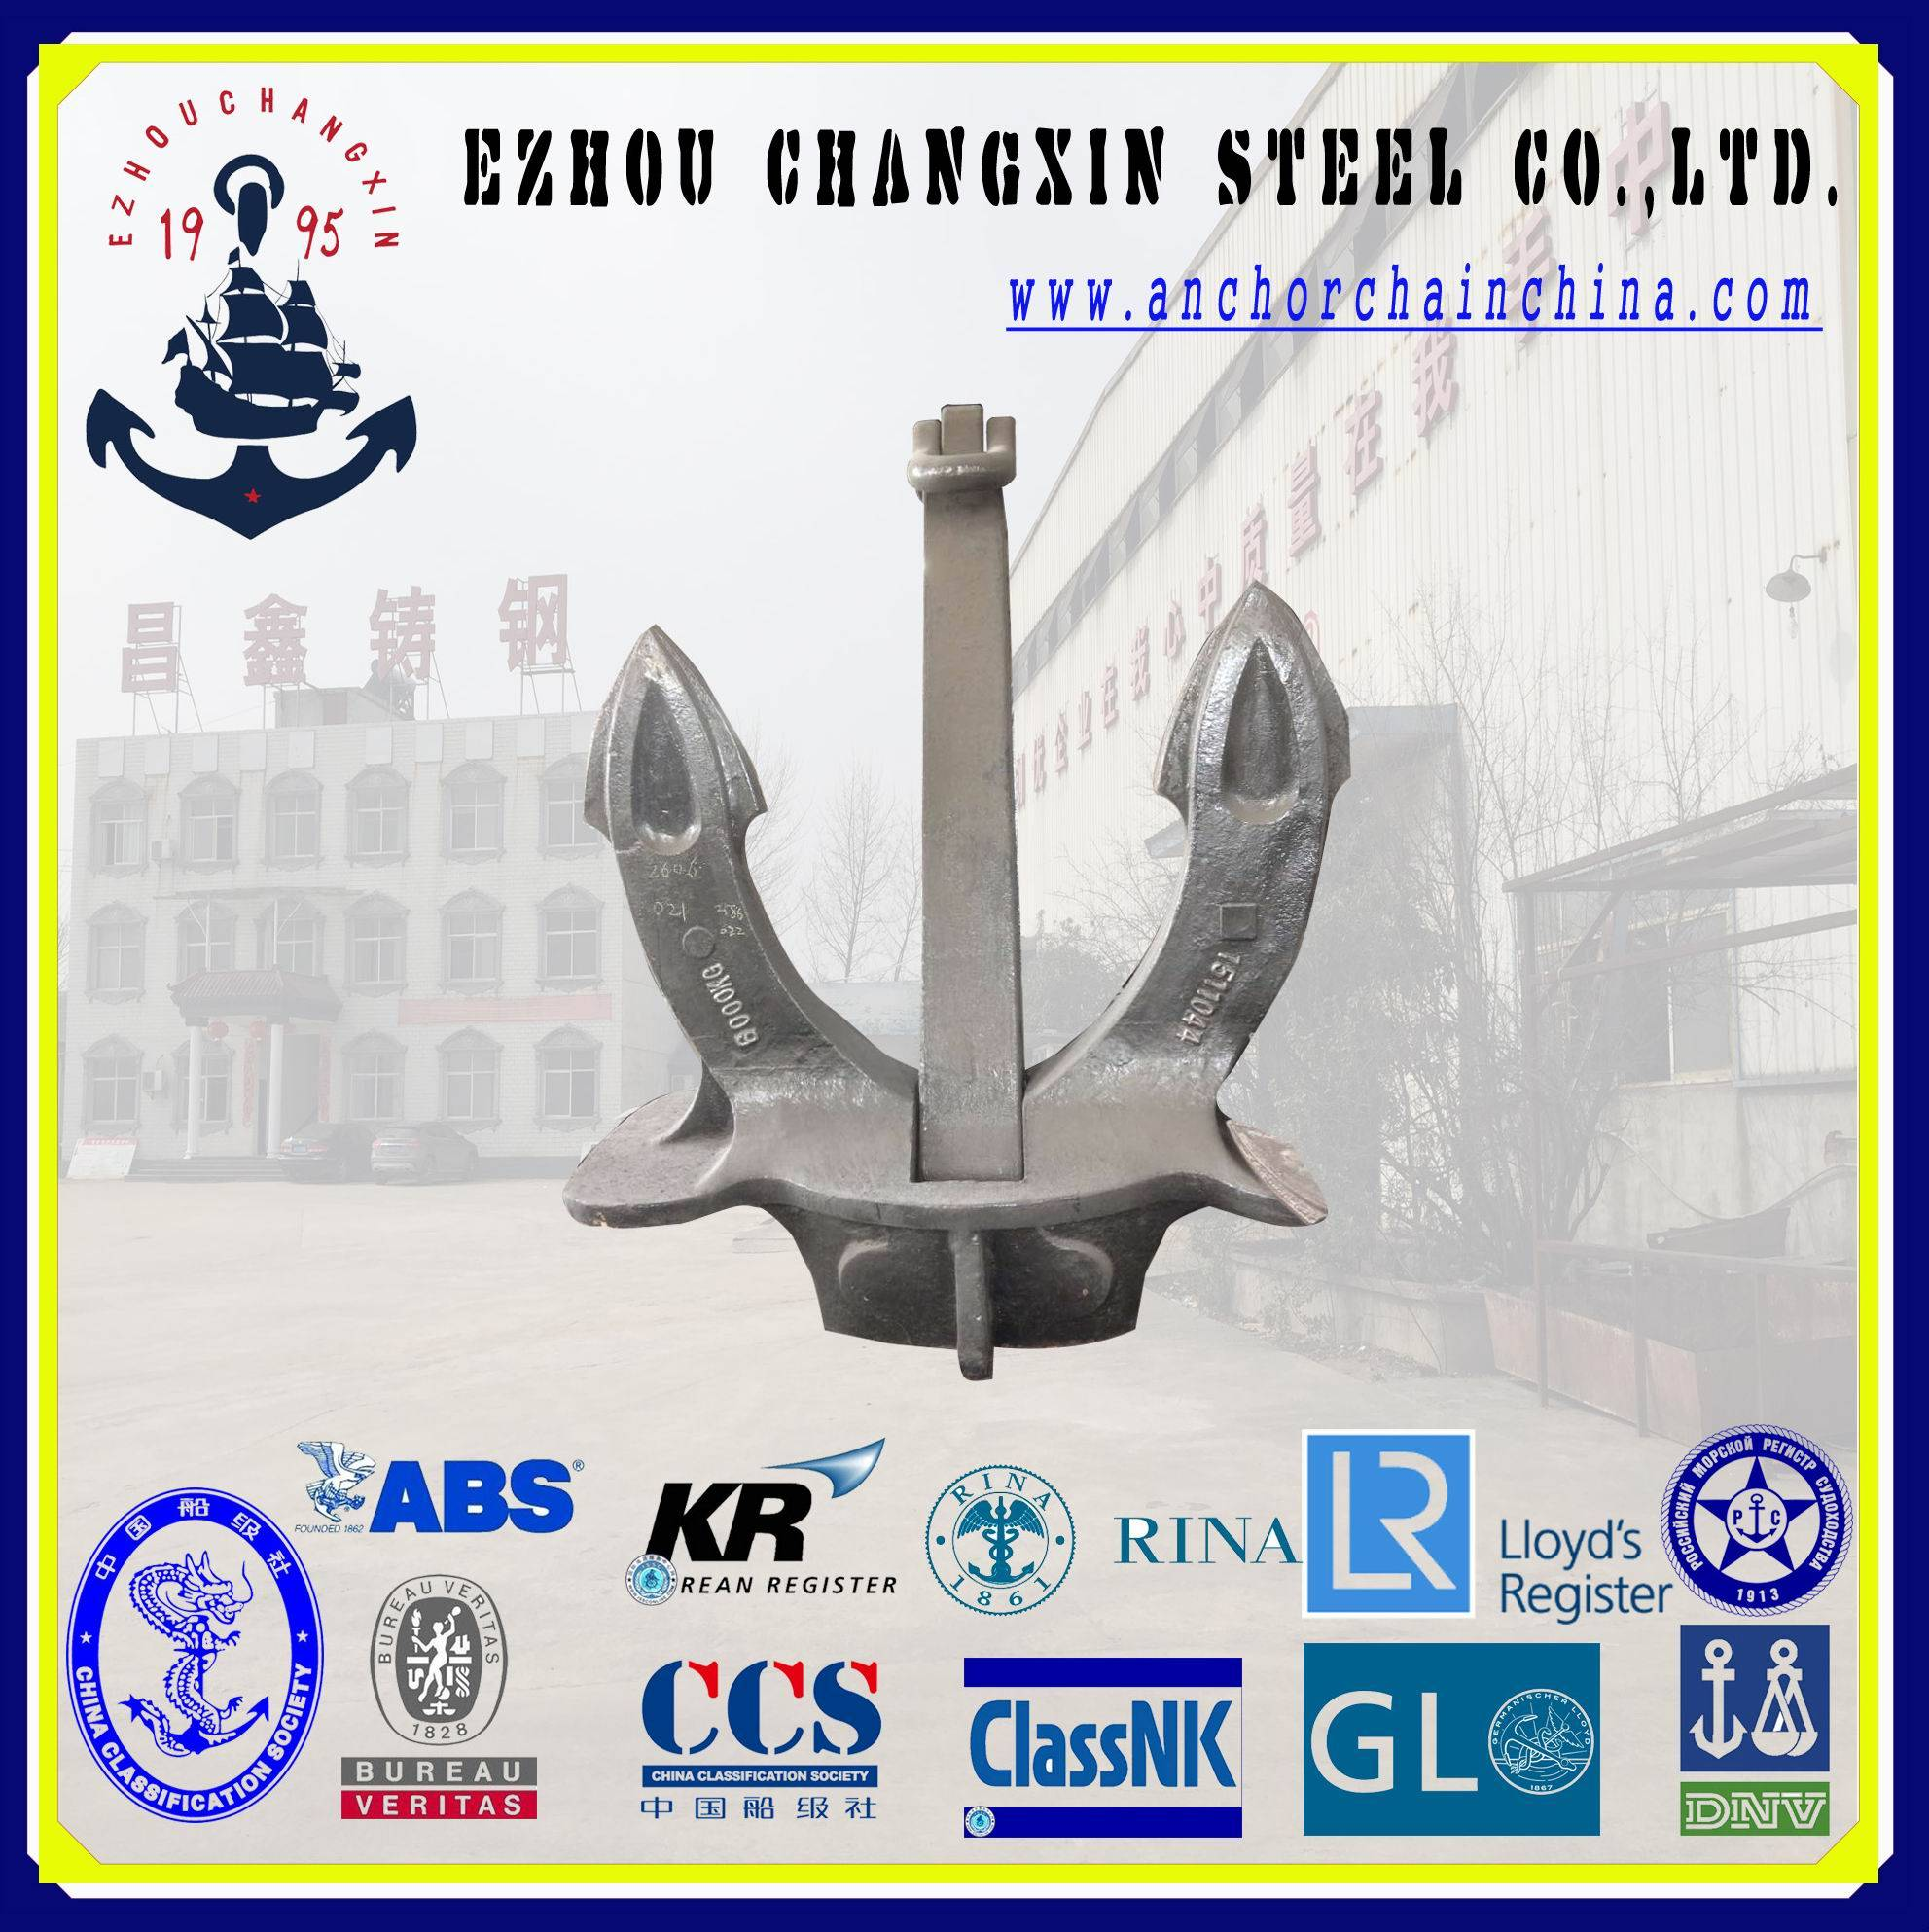 The worldsale sea anchor supplier Steel casting type A,B,C hall ship anchor for sale with CCS,ABS,LR